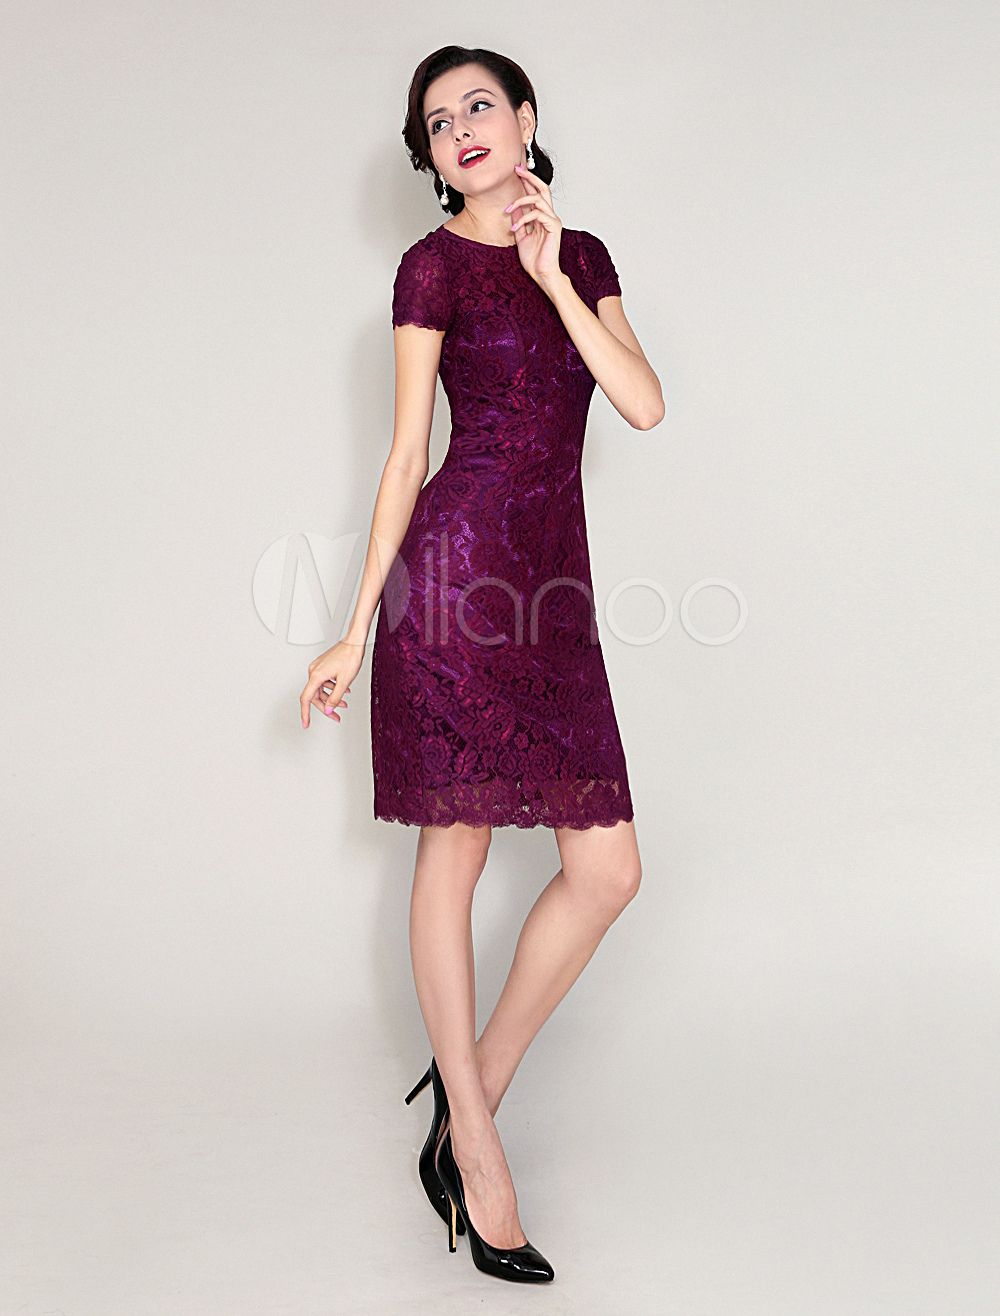 Lace Mother Of Bride Dress Magenta Sheath Wedding Party Backless Jewel Neck Short Sleeve Knee Length Evening Guest: Magenta Short Wedding Dresses At Websimilar.org